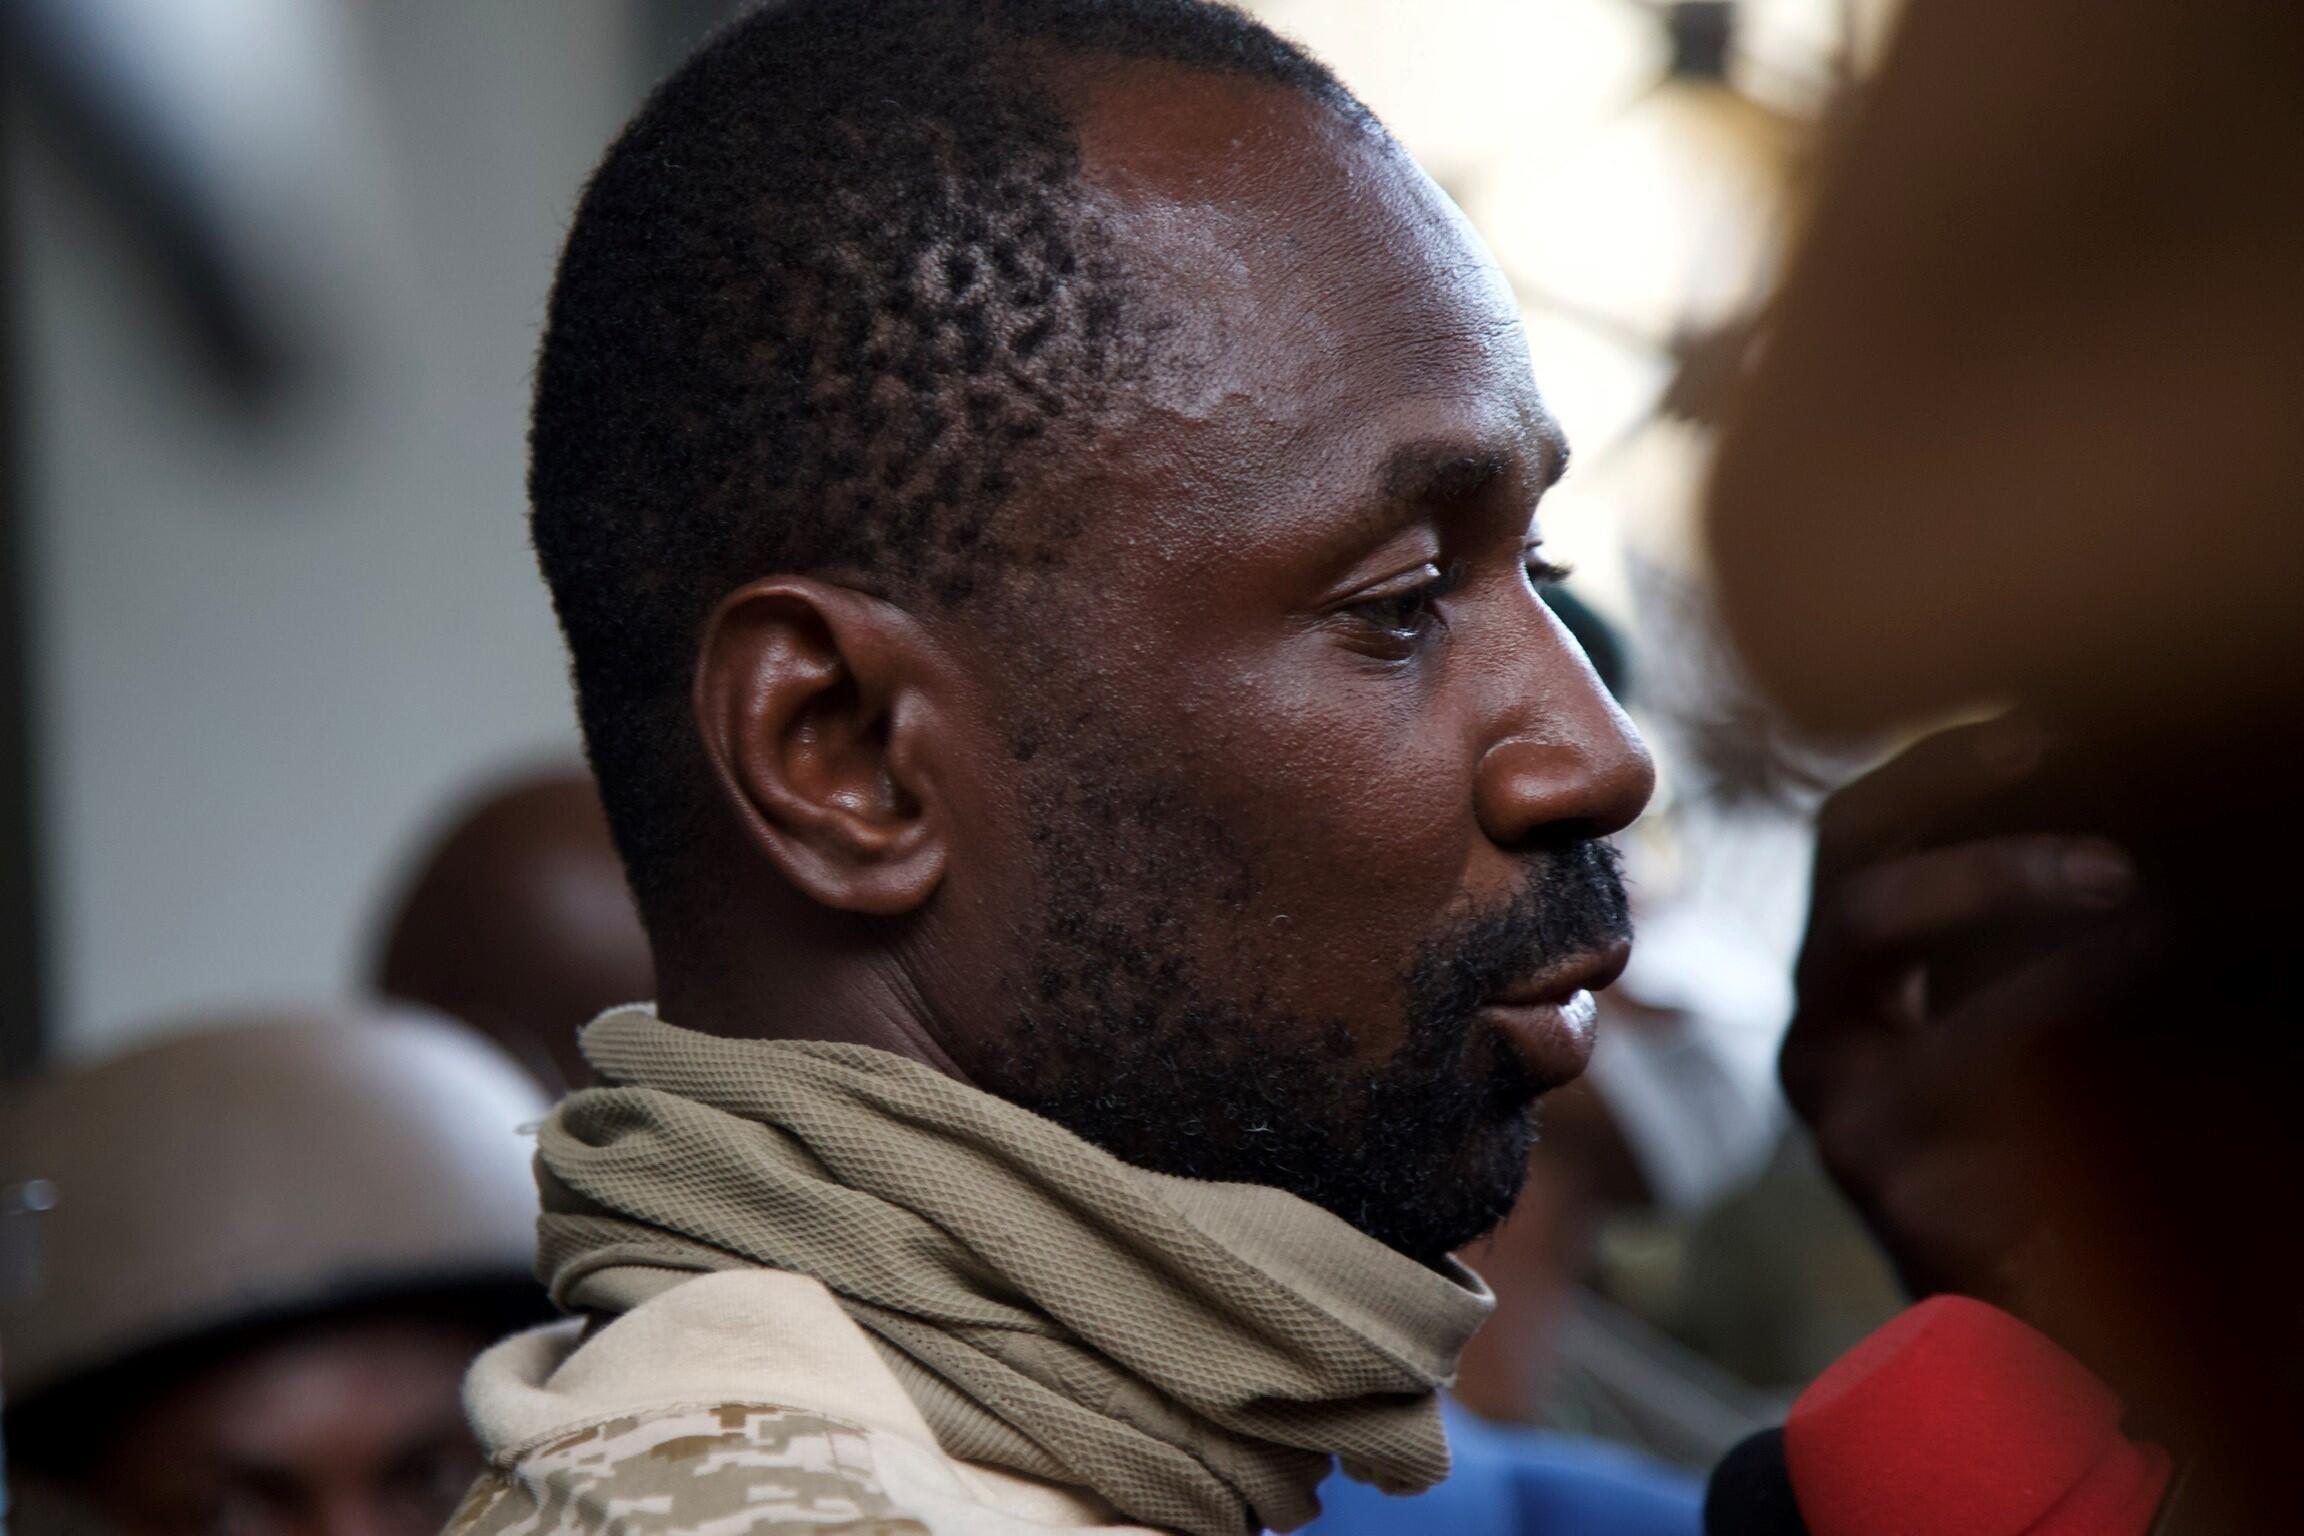 Malian strongman colonel Assimi Goita is a former special forces commander